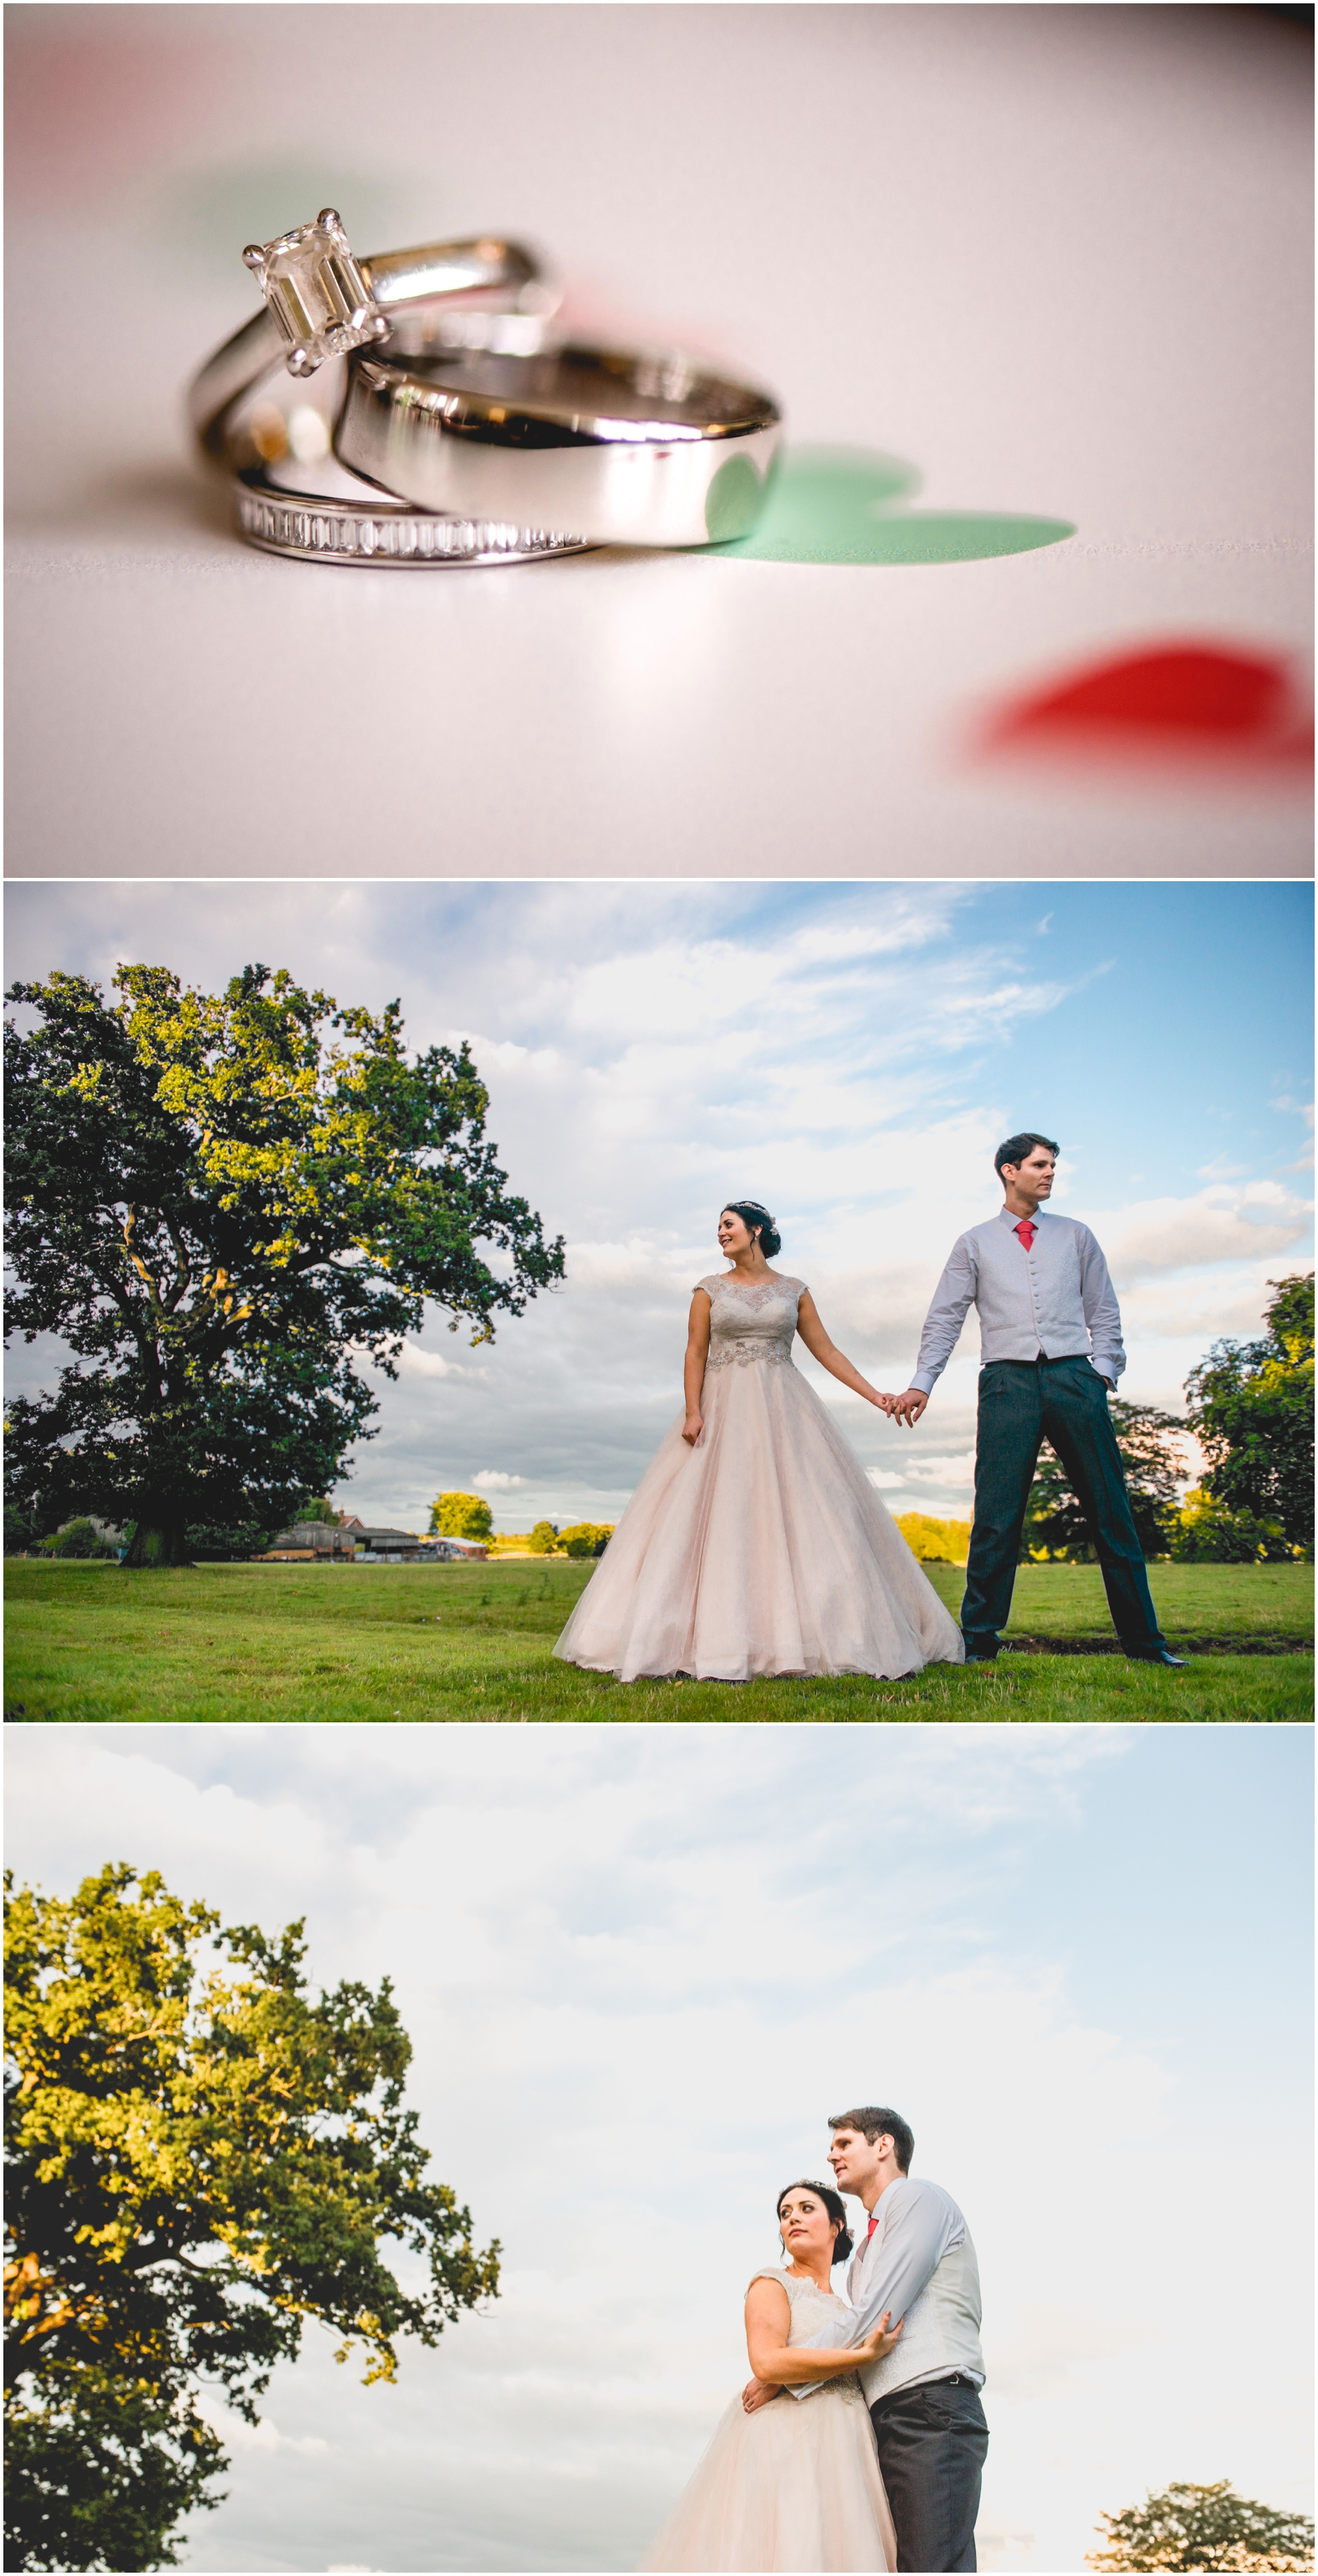 Sage and coral themed modern wedding at Pendrell Hall Wedding Photography by Lisa Carpenter Photography, West Midlands , Birmingham and Sutton Coldfield Wedding Photographer. Portraits